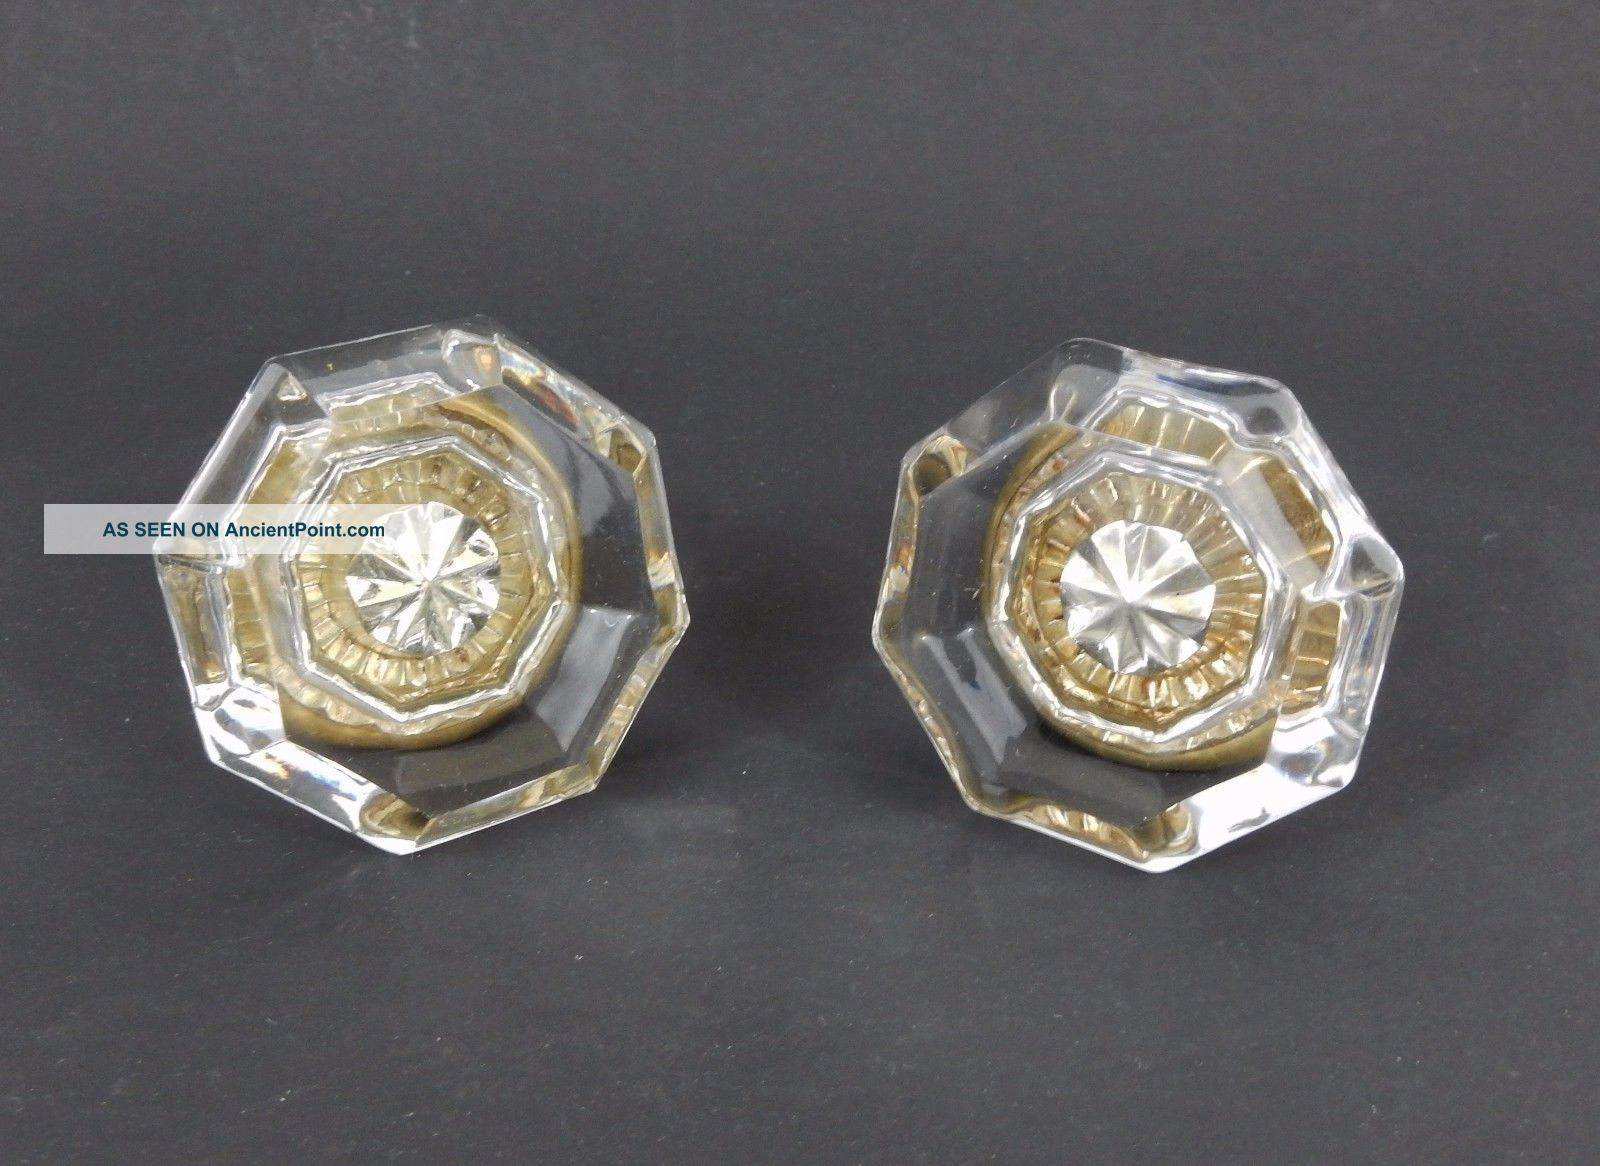 Antique 8 Point Octagonal Glass Door Knob Pair With Center Star 2 1/4